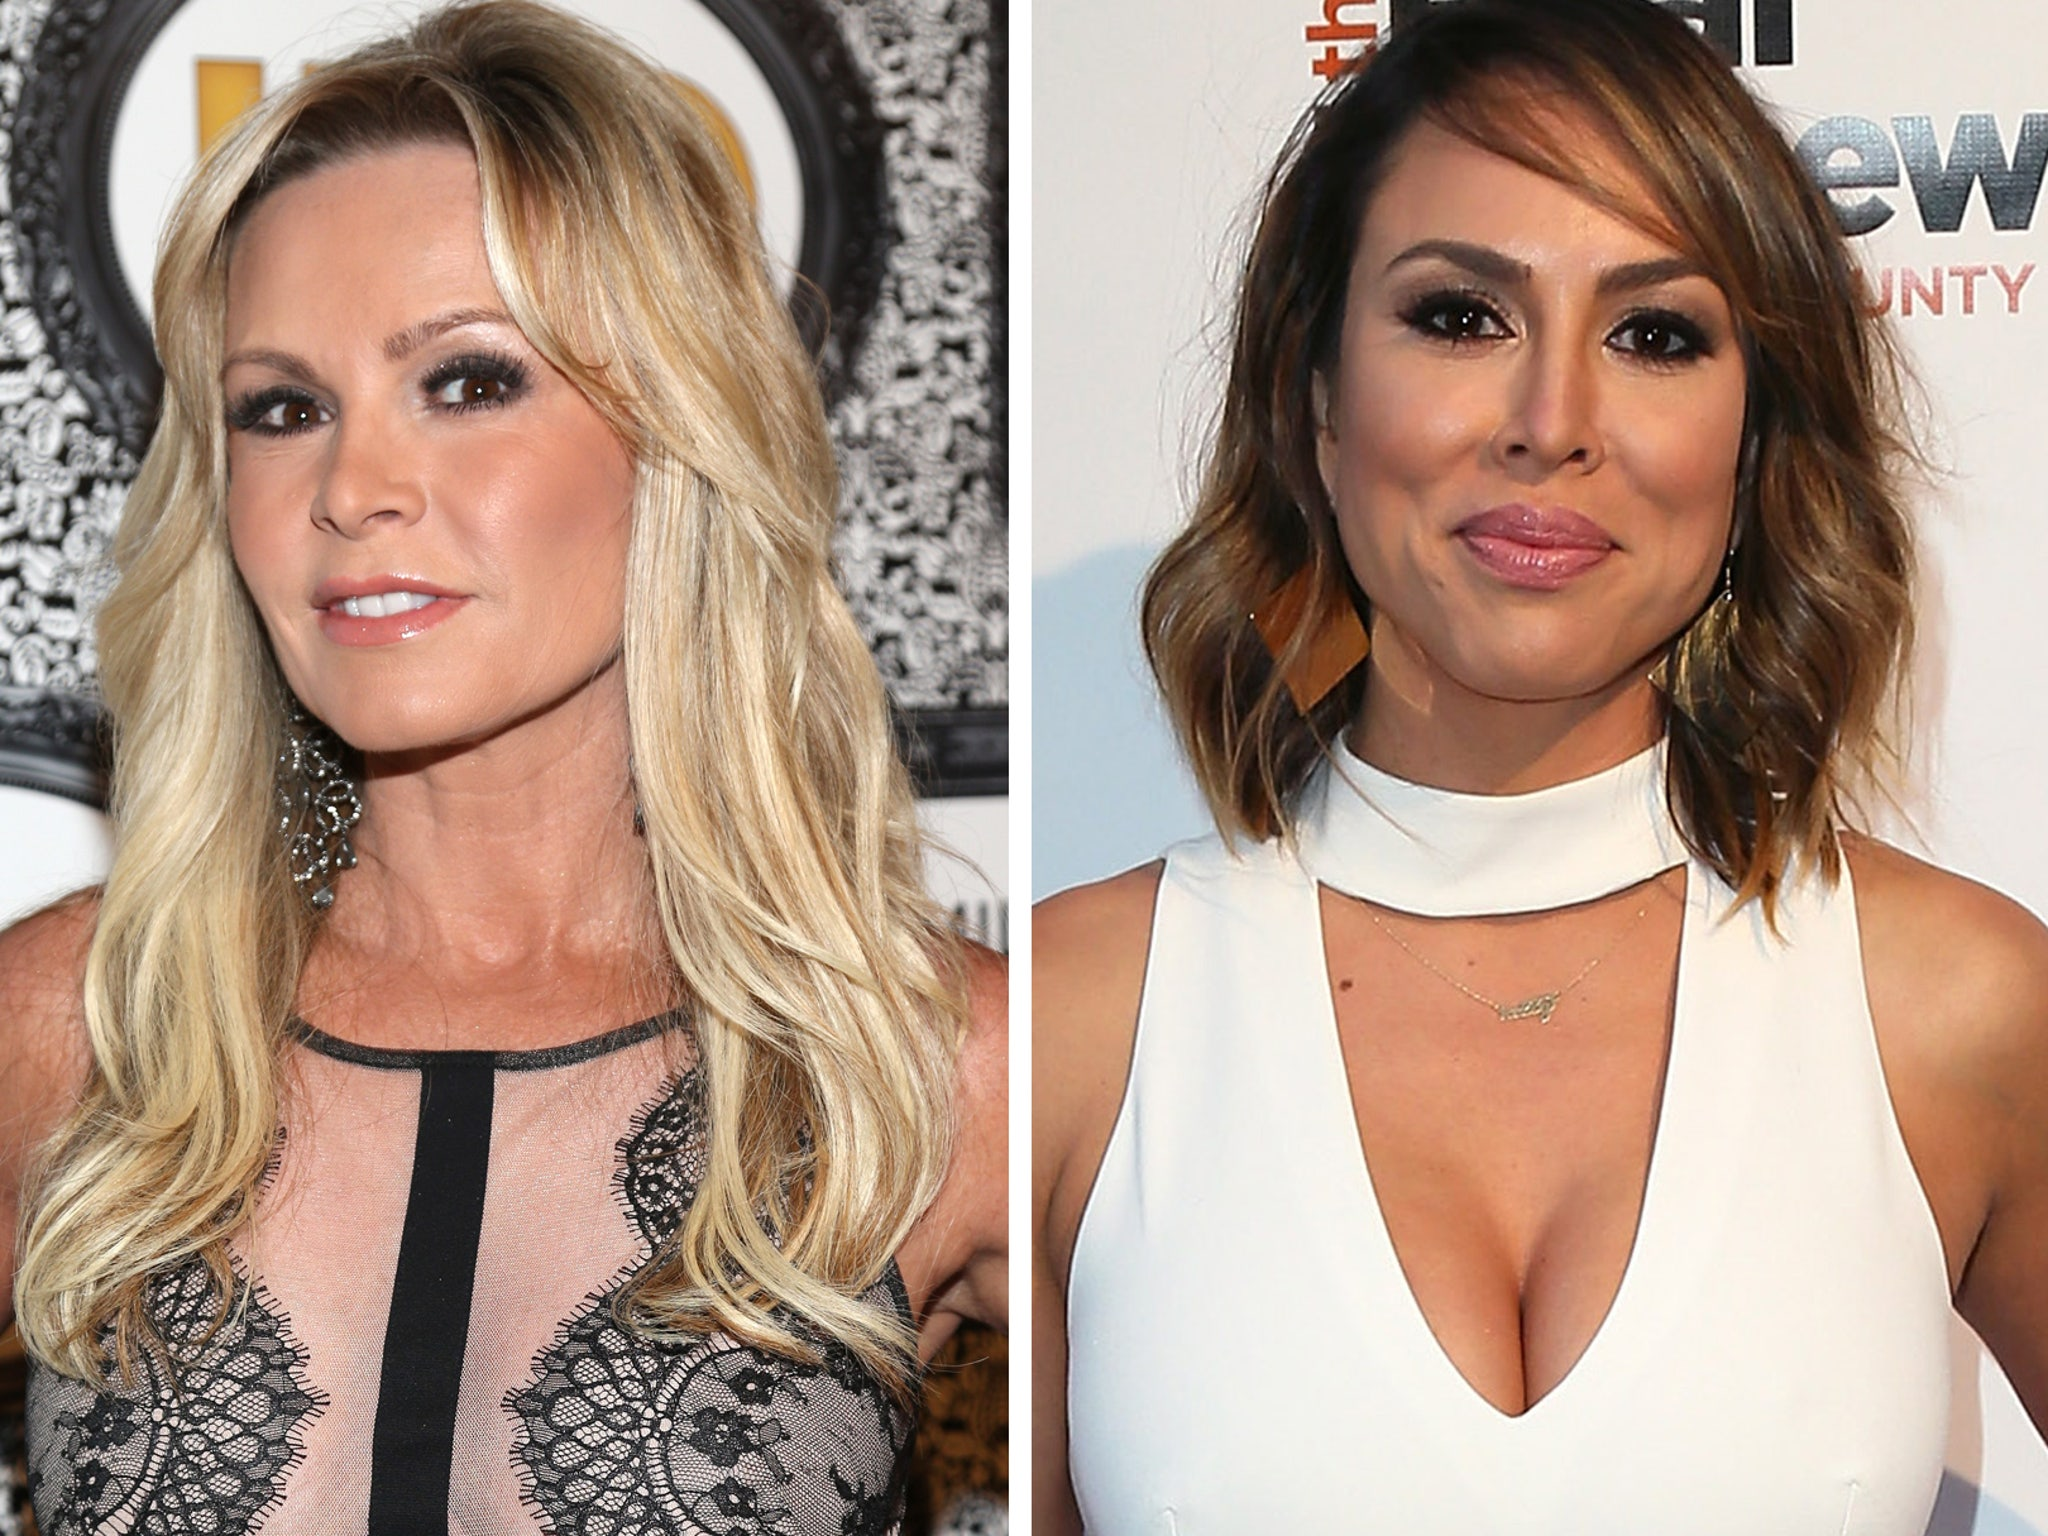 Tamra Judge Calls For Kelly Dodd To Be Fired From Rhoc For Past